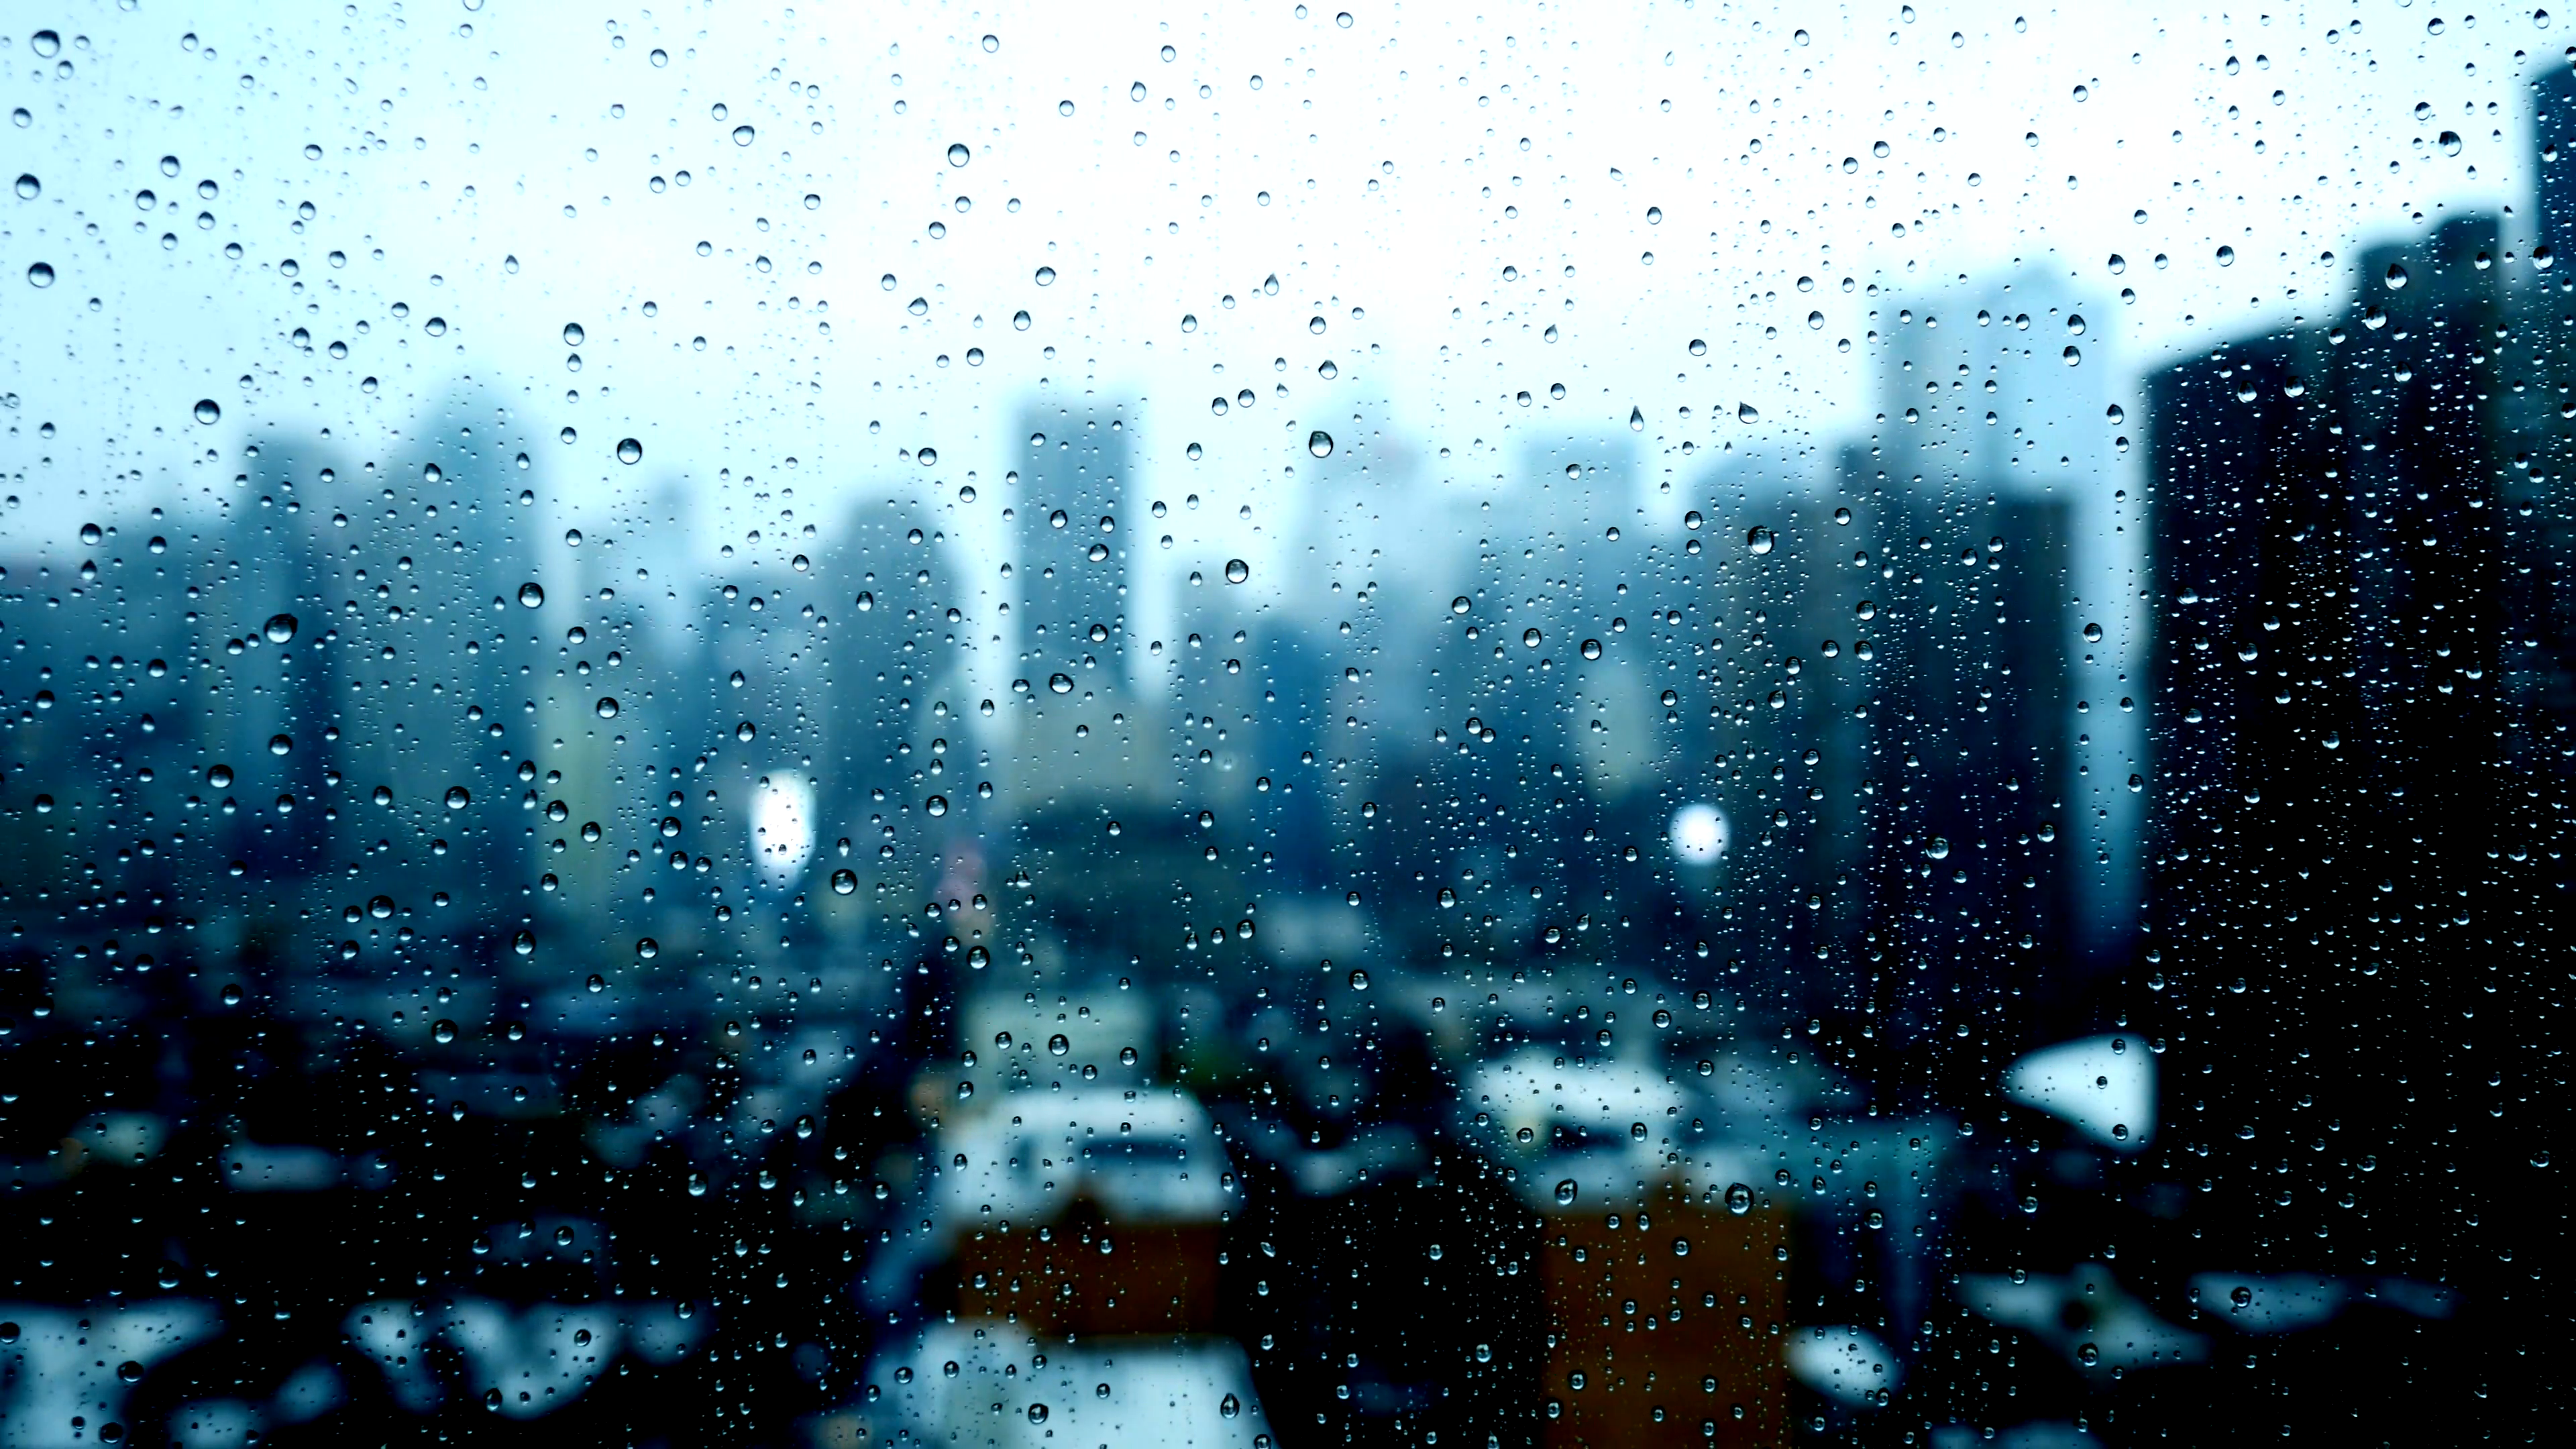 blurry city skyline window view. sad bad weather. rain drops background.